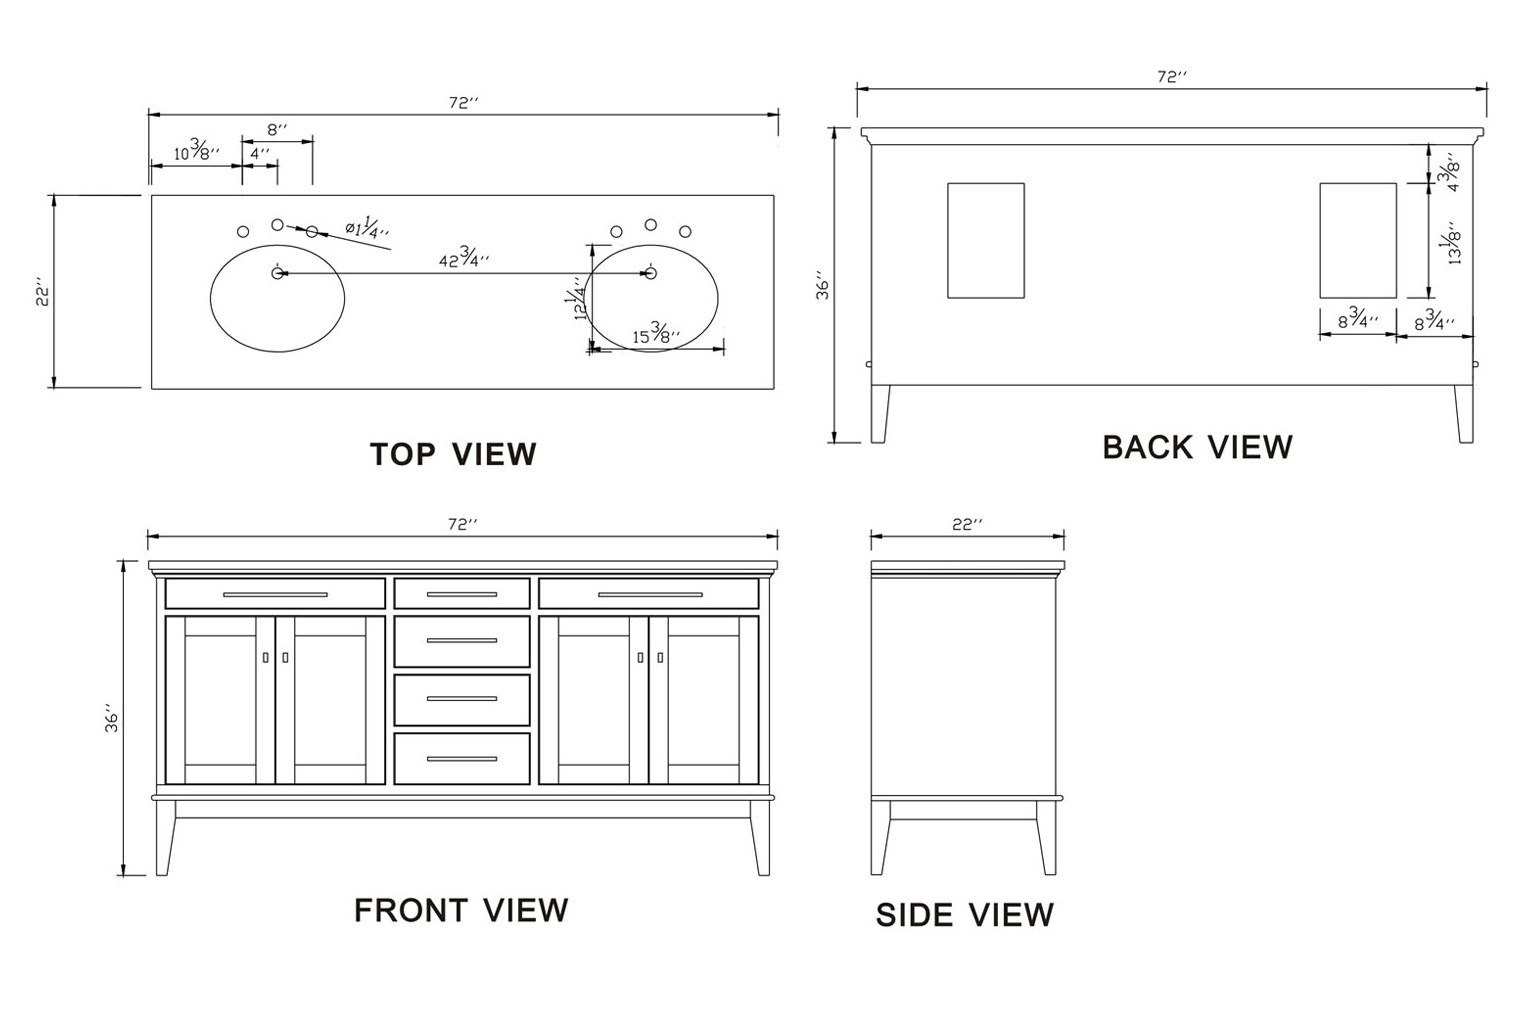 1996 Ford F 150 Heater Blend Door Actuator besides Recessed Linear LED Lighting additionally How Fold Shirt Dress moreover Hidden Hinge Binding as well Linear LED Recessed Ceiling Lights. on cabinet door diagram